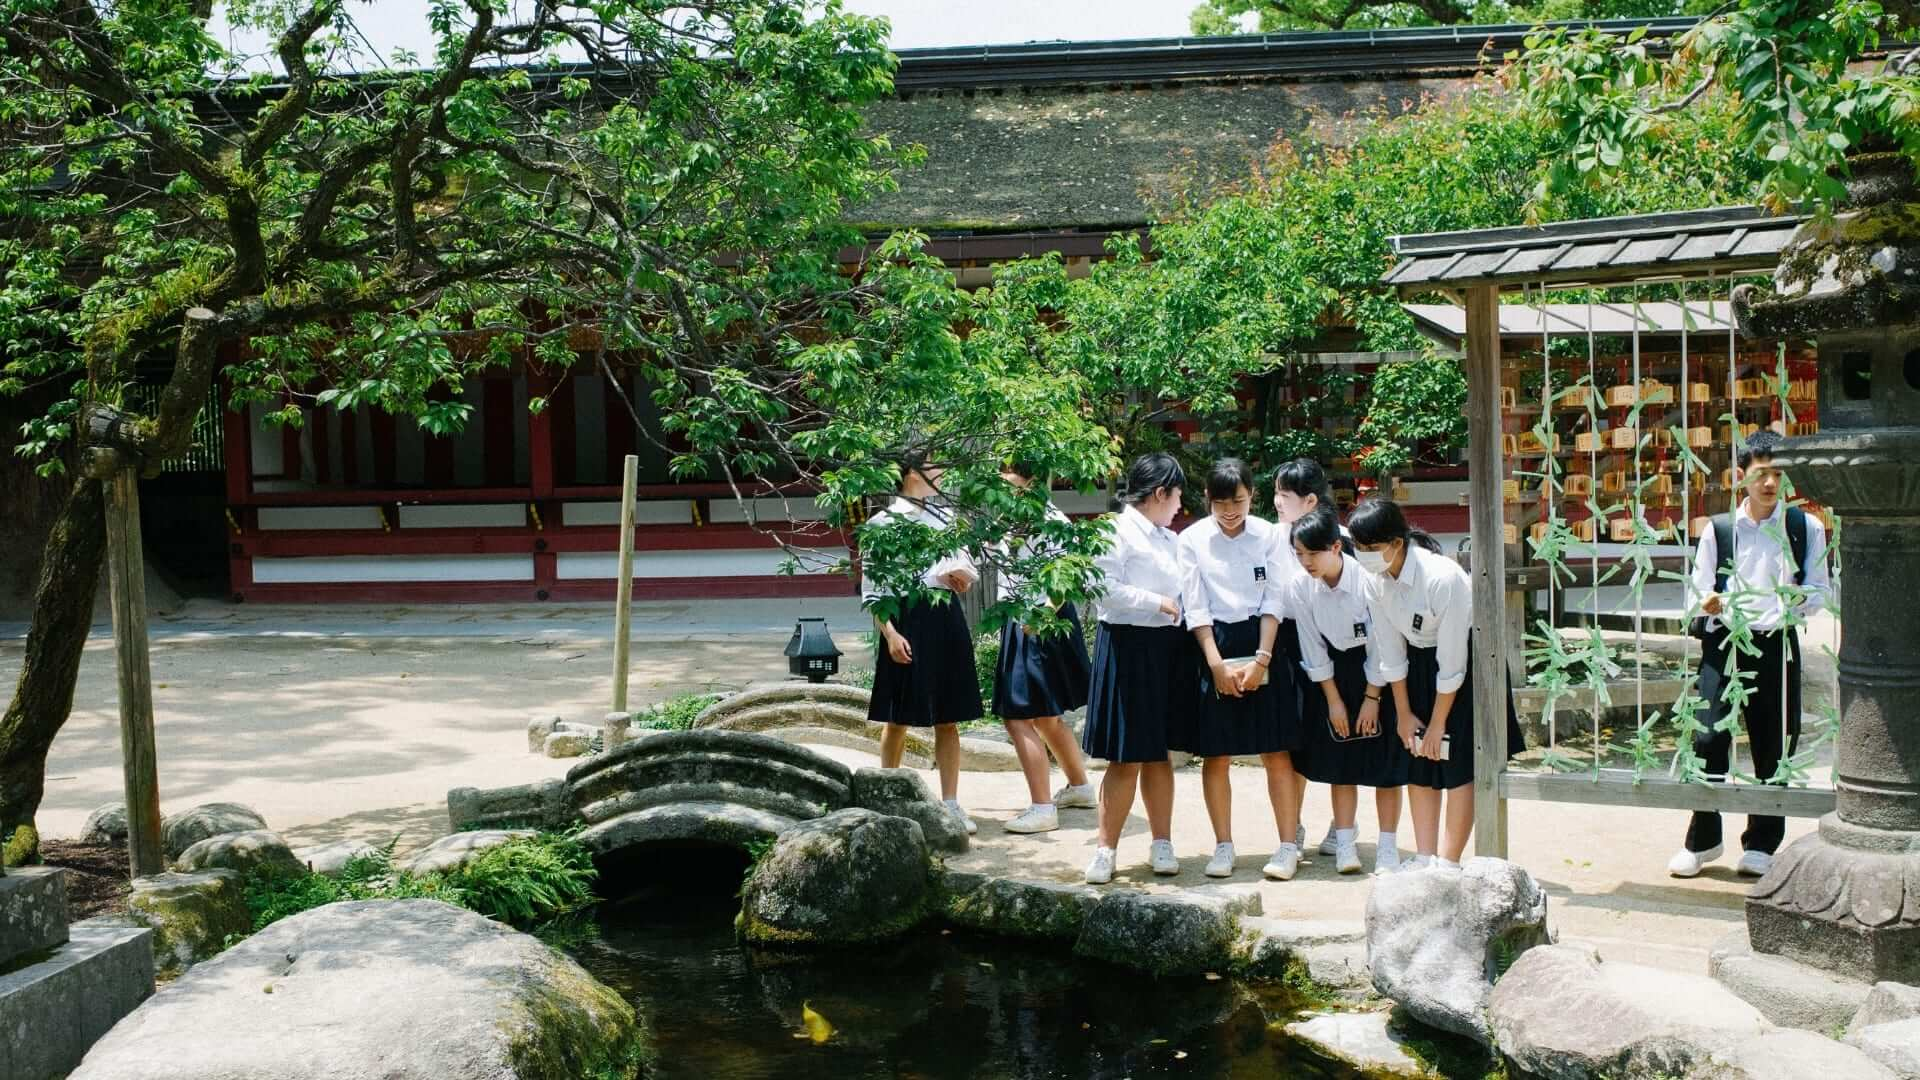 A group of female students wearing school uniforms is looking into a pond with a fish swimming in it in Japan.